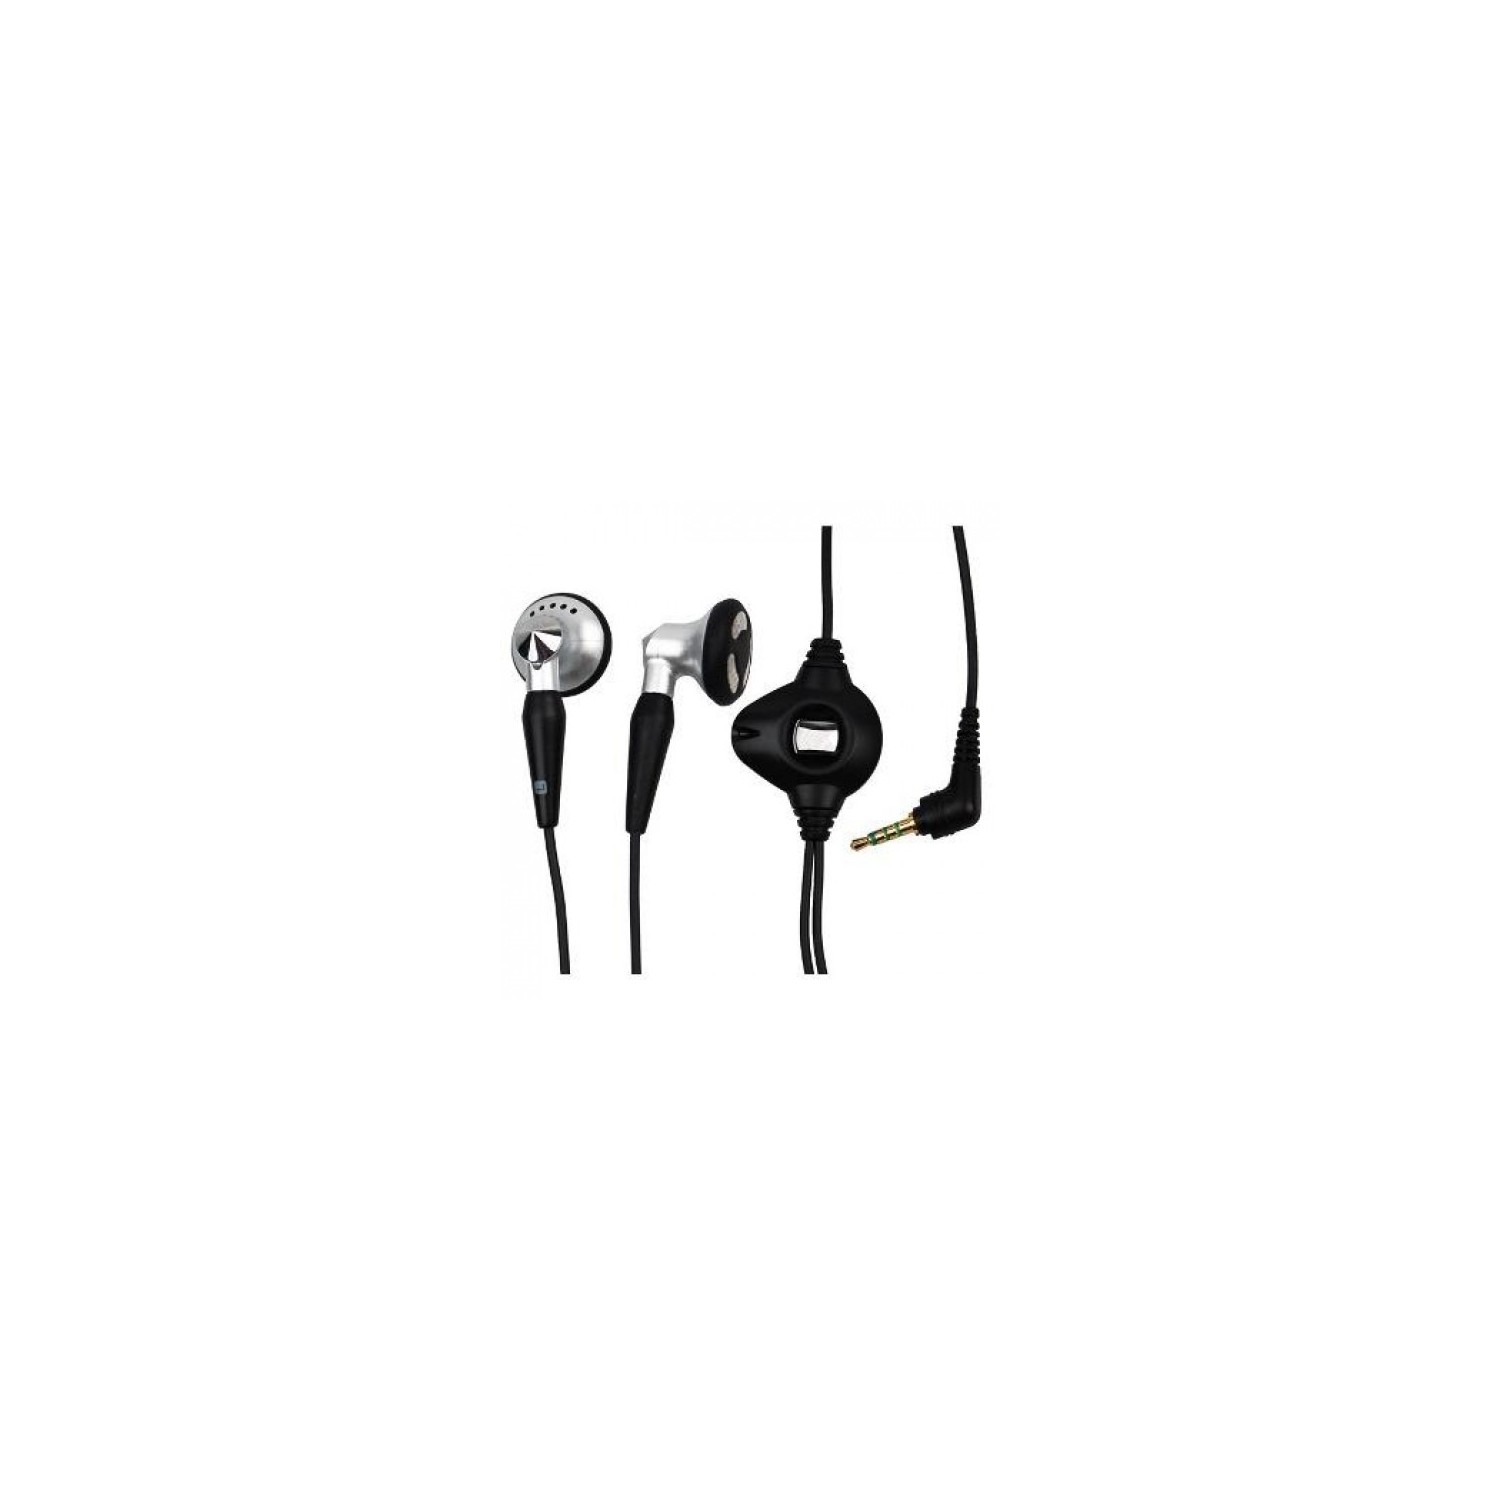 Manos libres auricular Stereo Universal 2.5mm